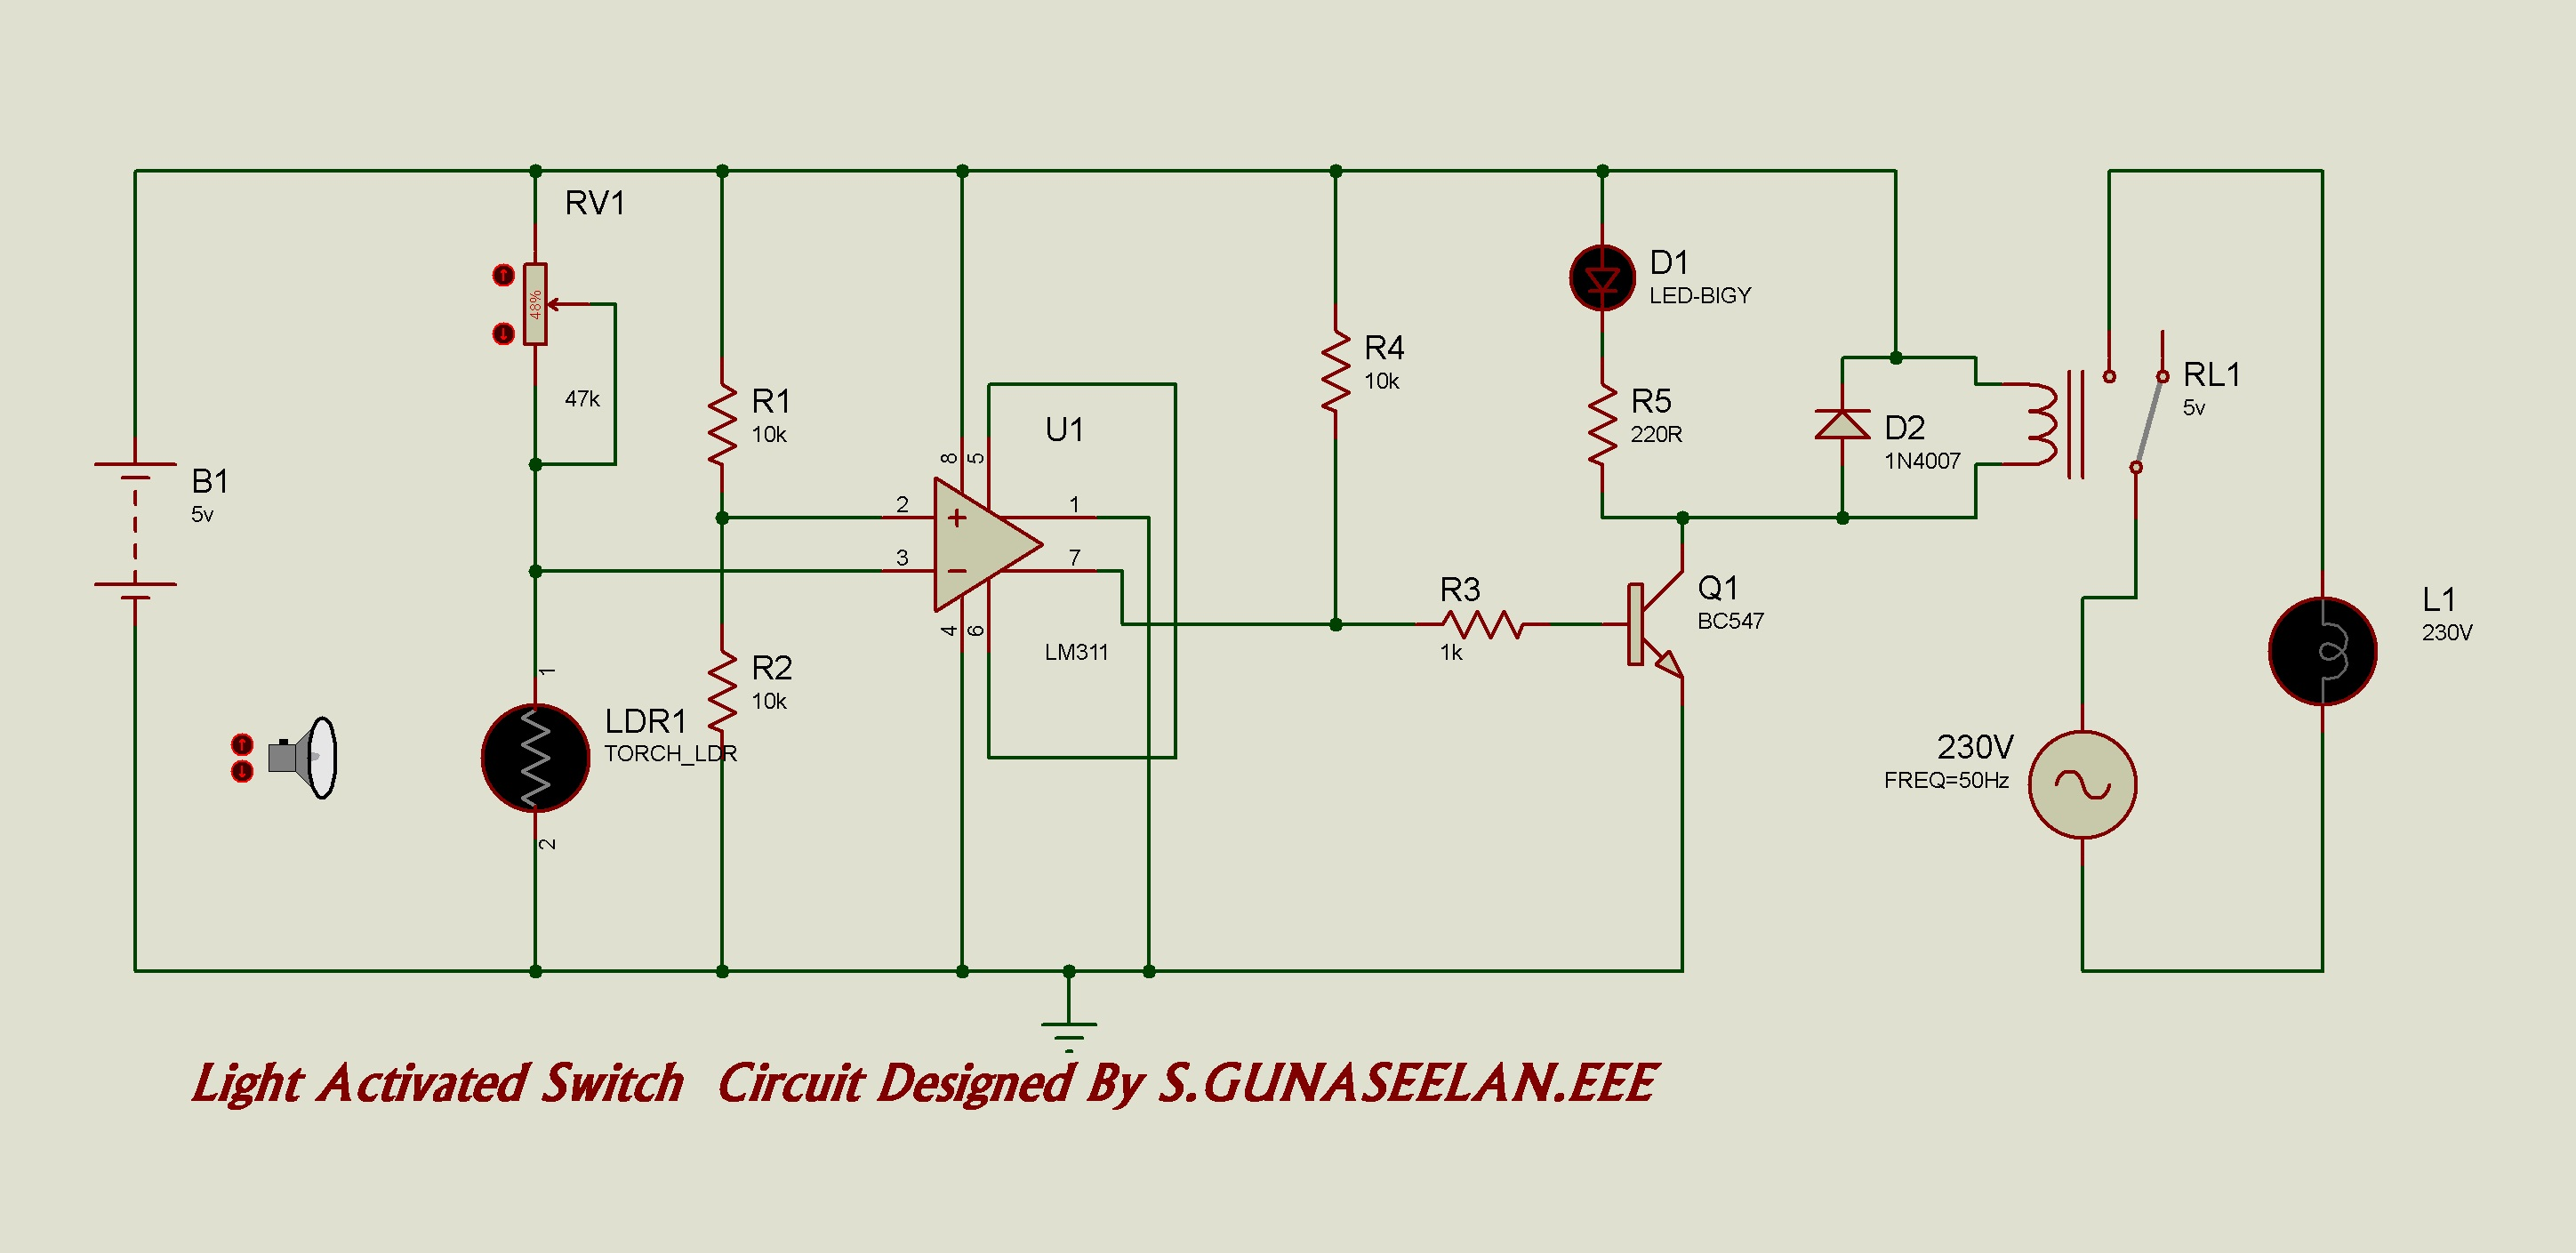 Gunacircuits Clap Switch Circuit Using Ne555 Timer Ic Circuits Gallery A Simple Light Activated With Diagram And Schematic Lm 311 Wired As Voltage Comparator An Ldr That Acts Sensor